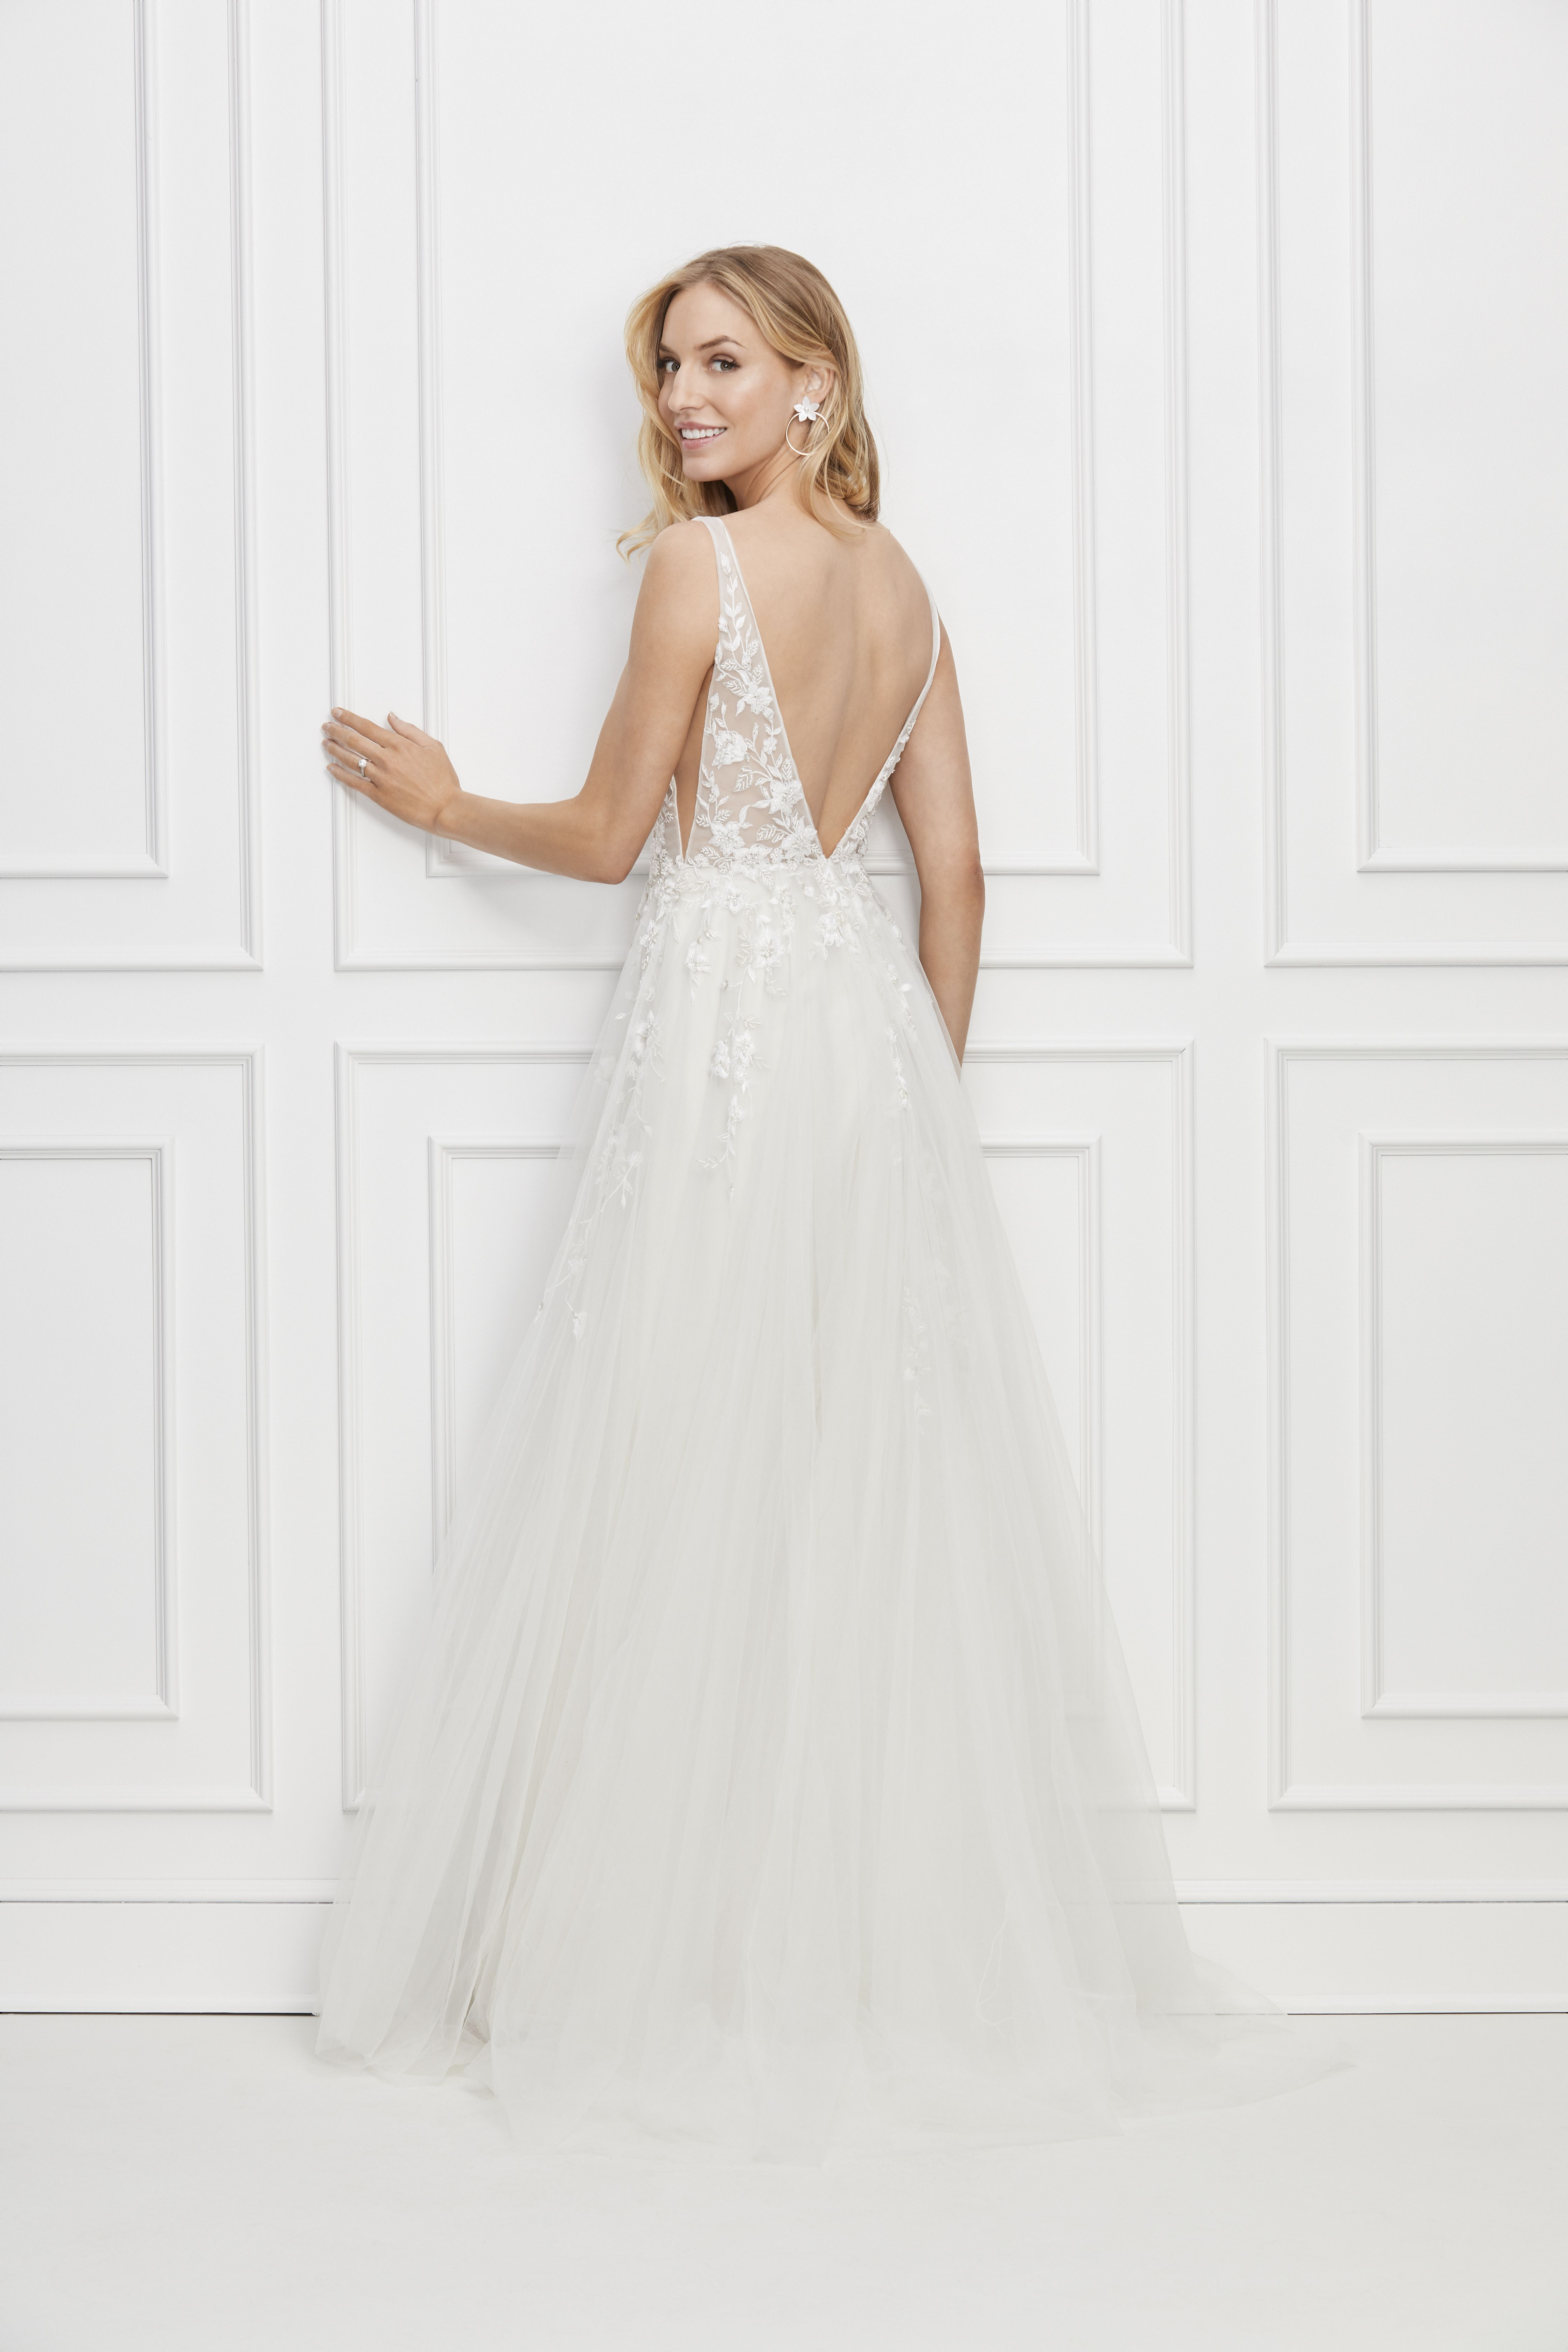 This Plunge Necked Gown Of Tulle Embroidered With Pretty Little